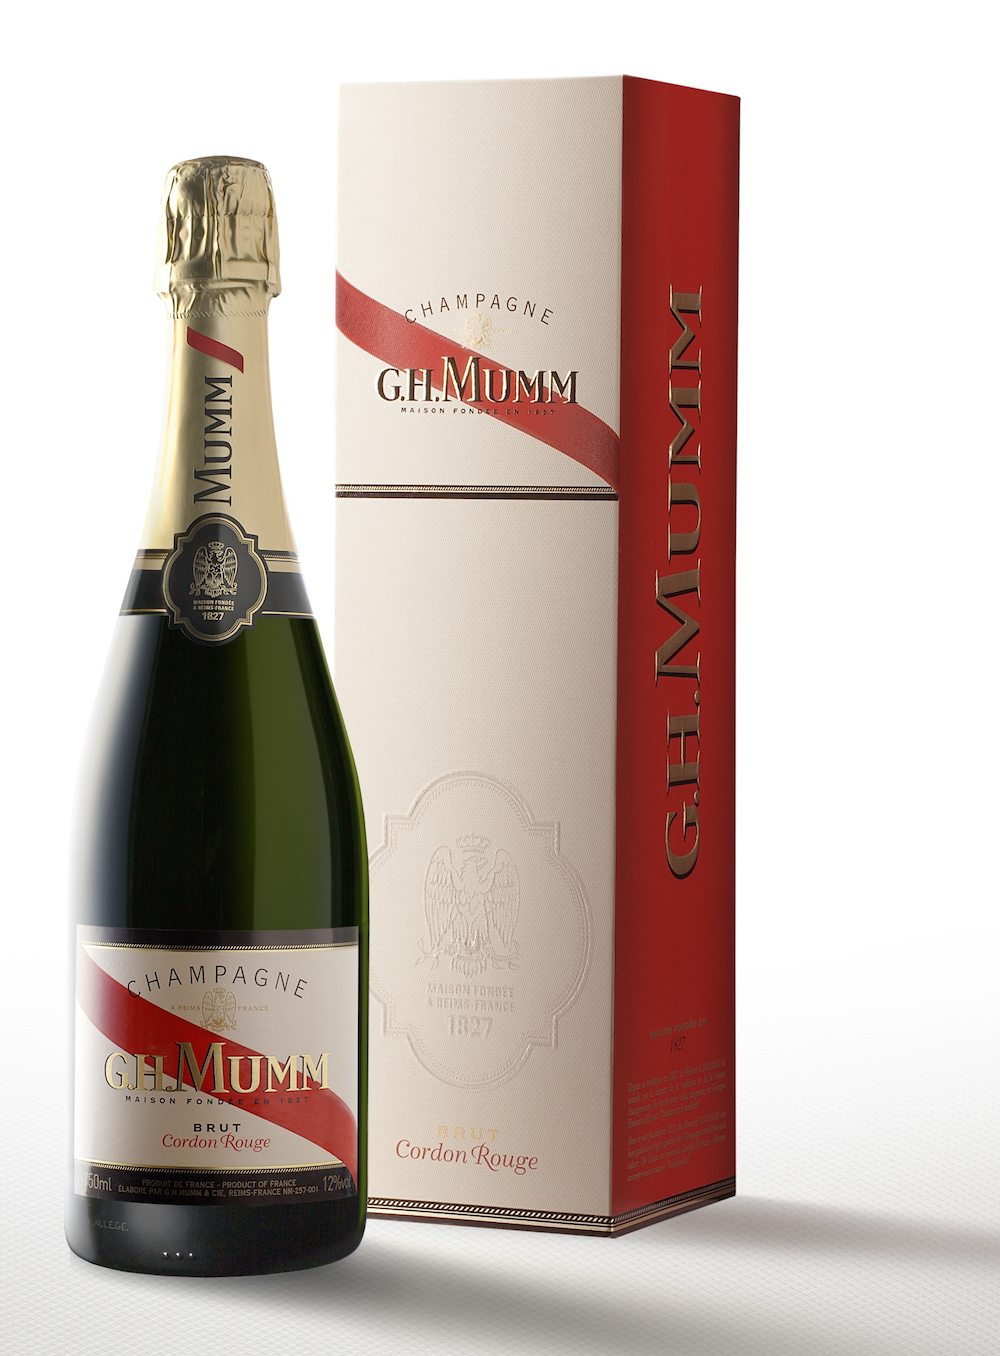 Photo: new packaging for the Gordon Rouge cuvee of the famous G.H. Mumm champaign